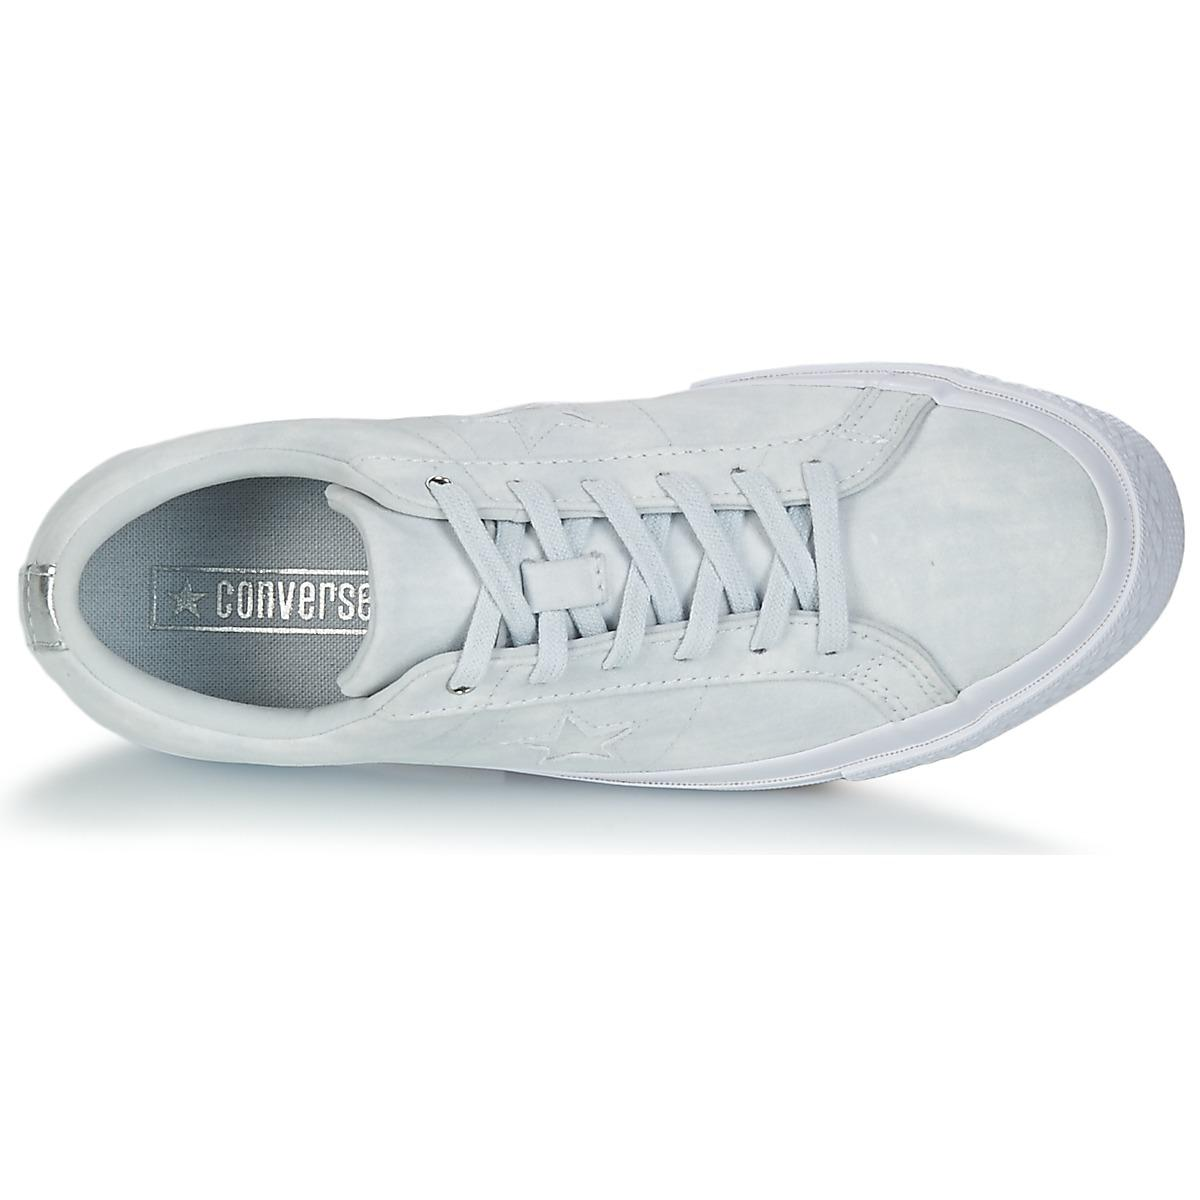 Converse One Star Shoes (trainers) in White - Save 26%